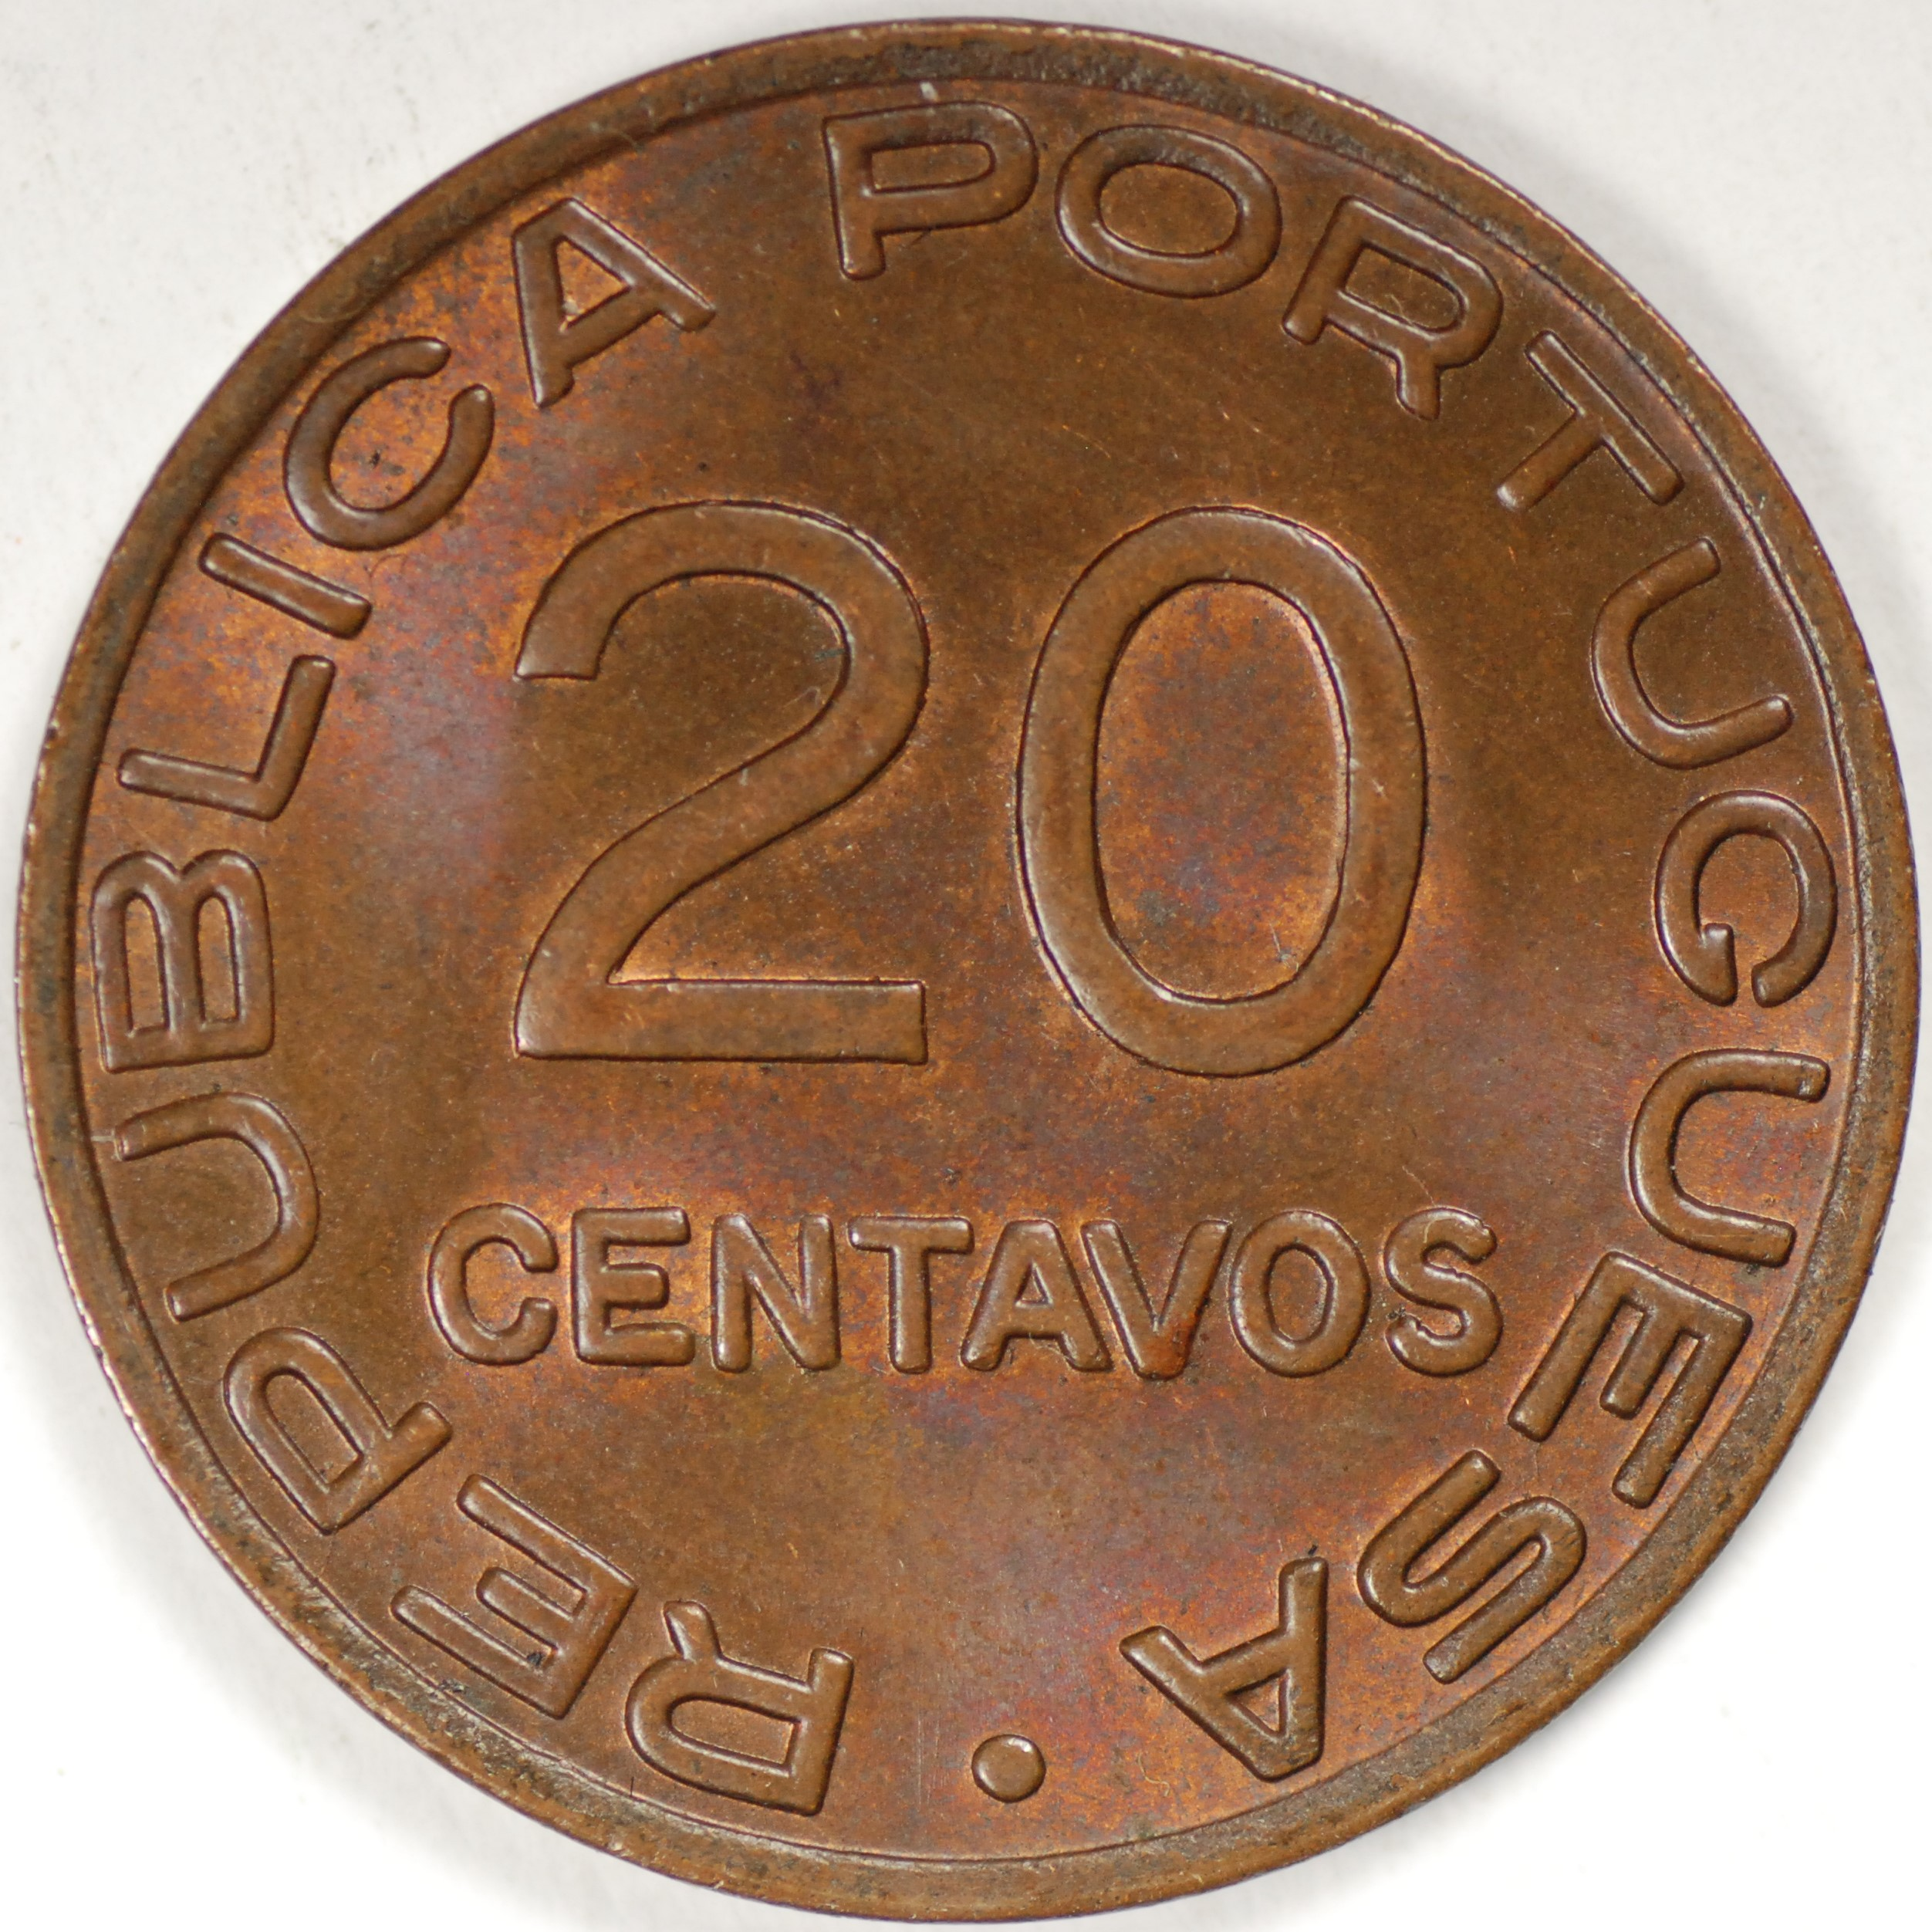 KM118 Mozambique 1994 20 Meticals Uncirculated